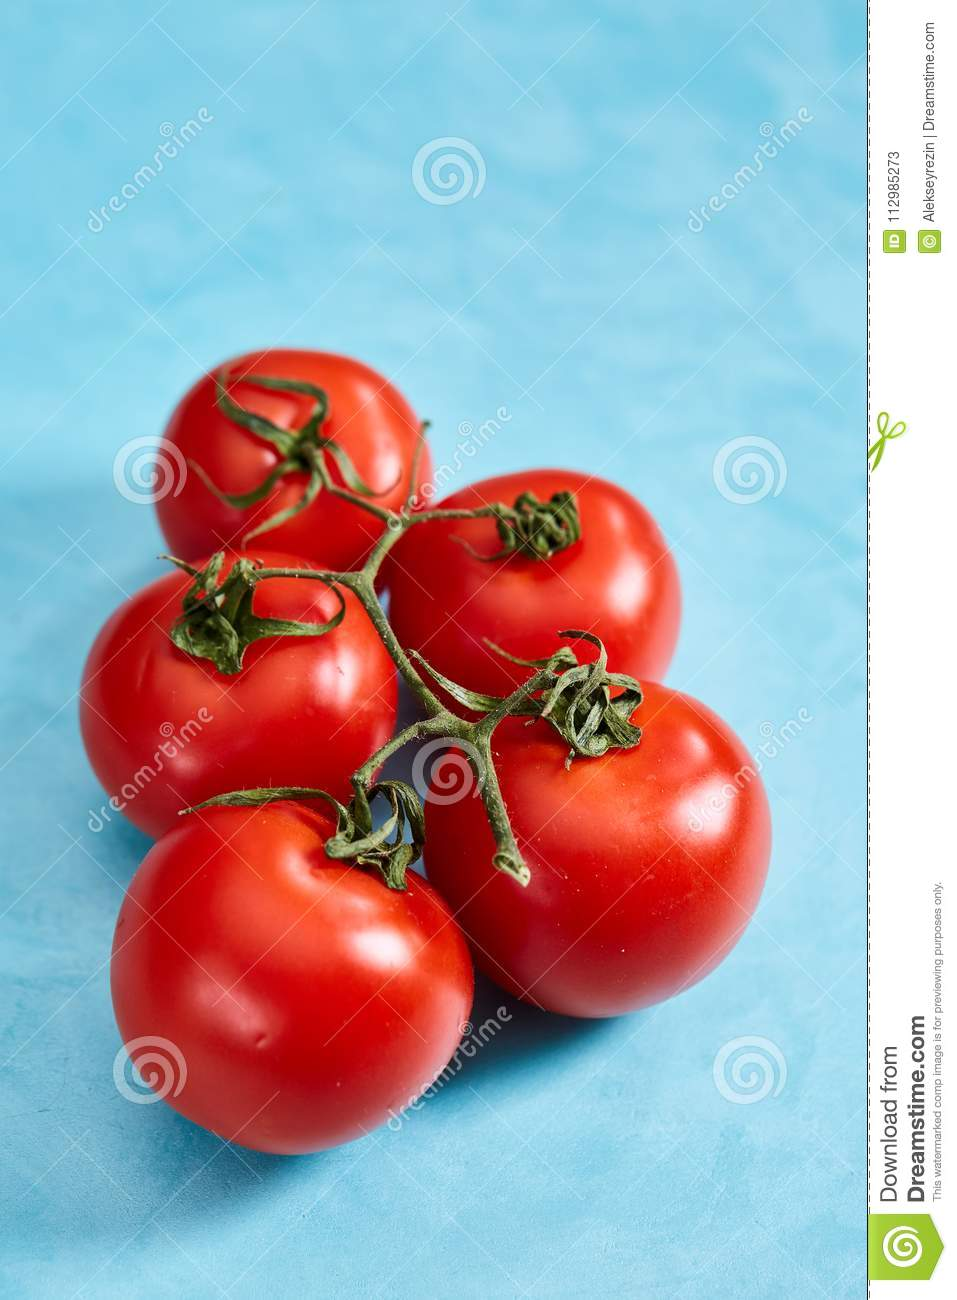 Bunch of fresh tomatoes with green leaves isolated on blue background, top view, close-up, selective focus